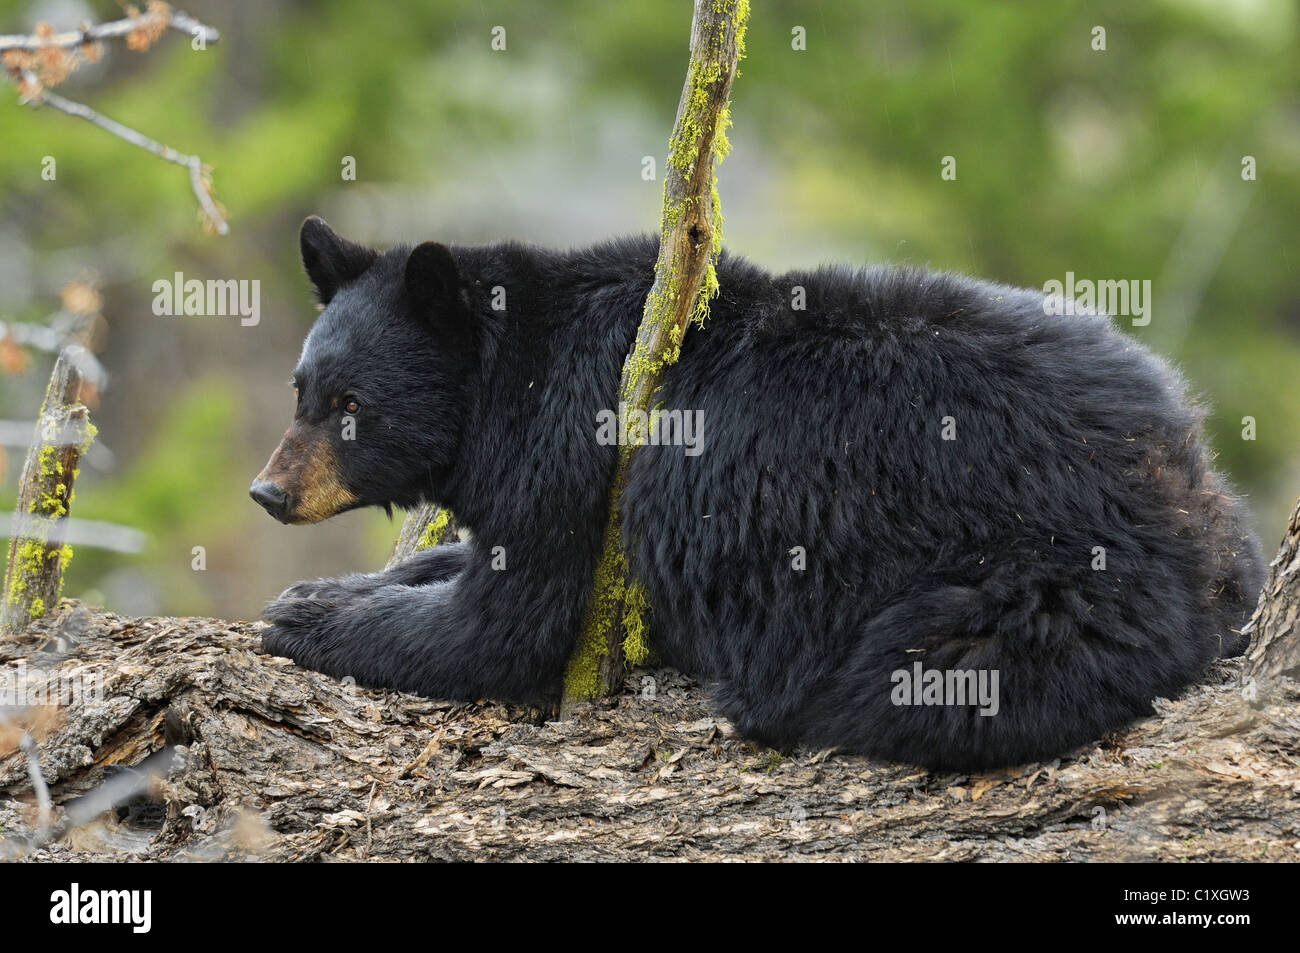 Black Bear on old growth tree. - Stock Image